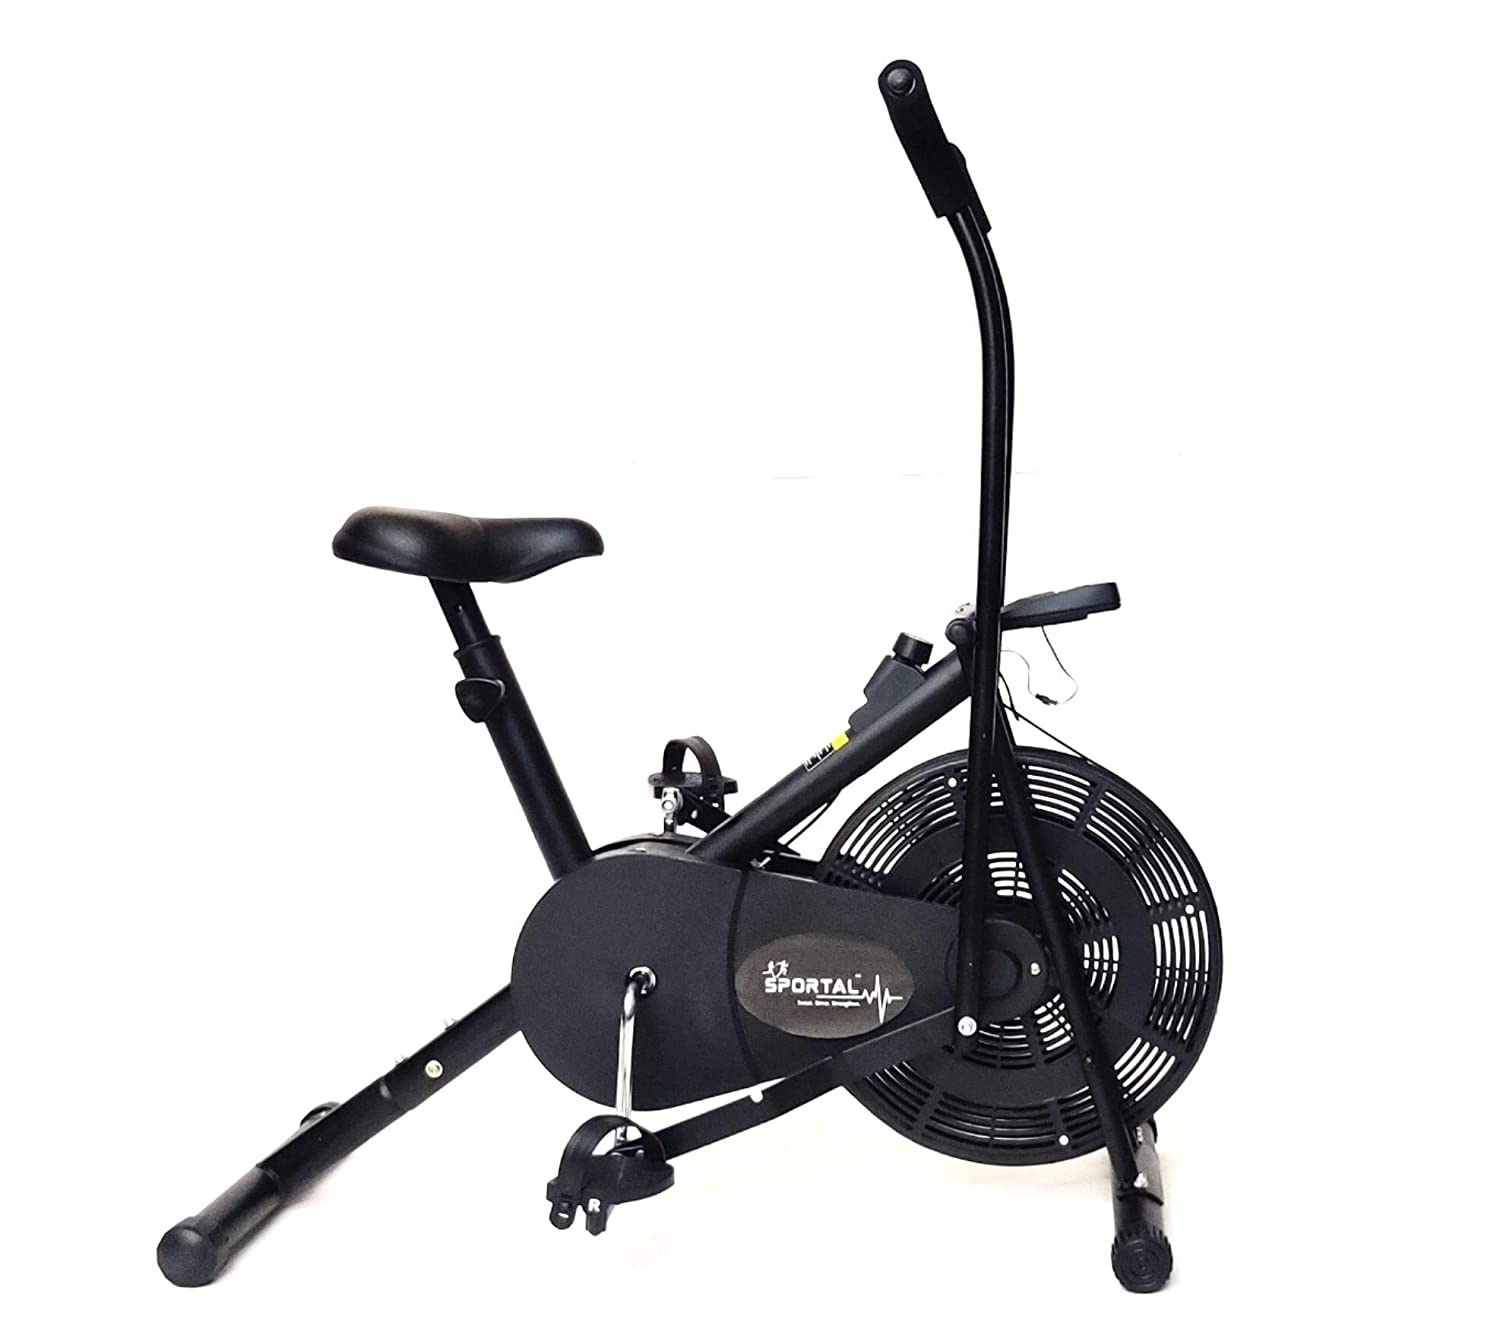 SPORTAL Air Bike Exercise Home Gym Cycle